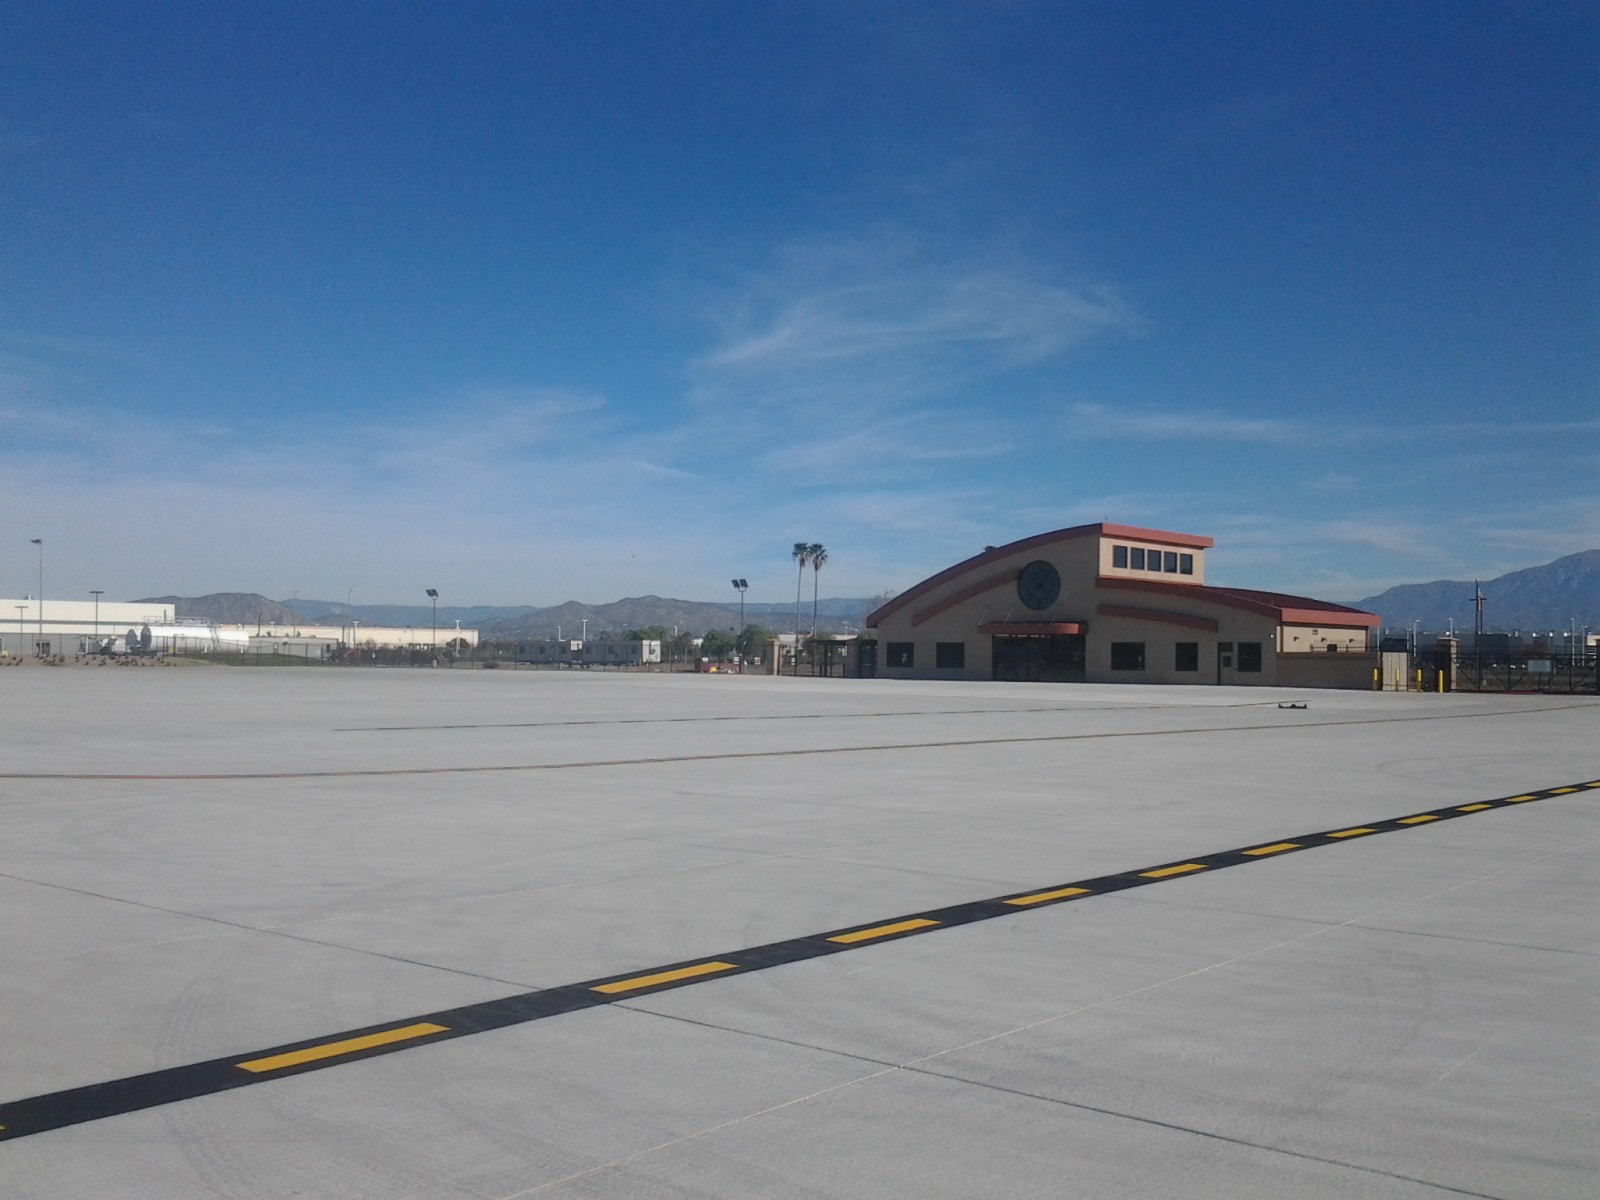 Apron View of Terminal